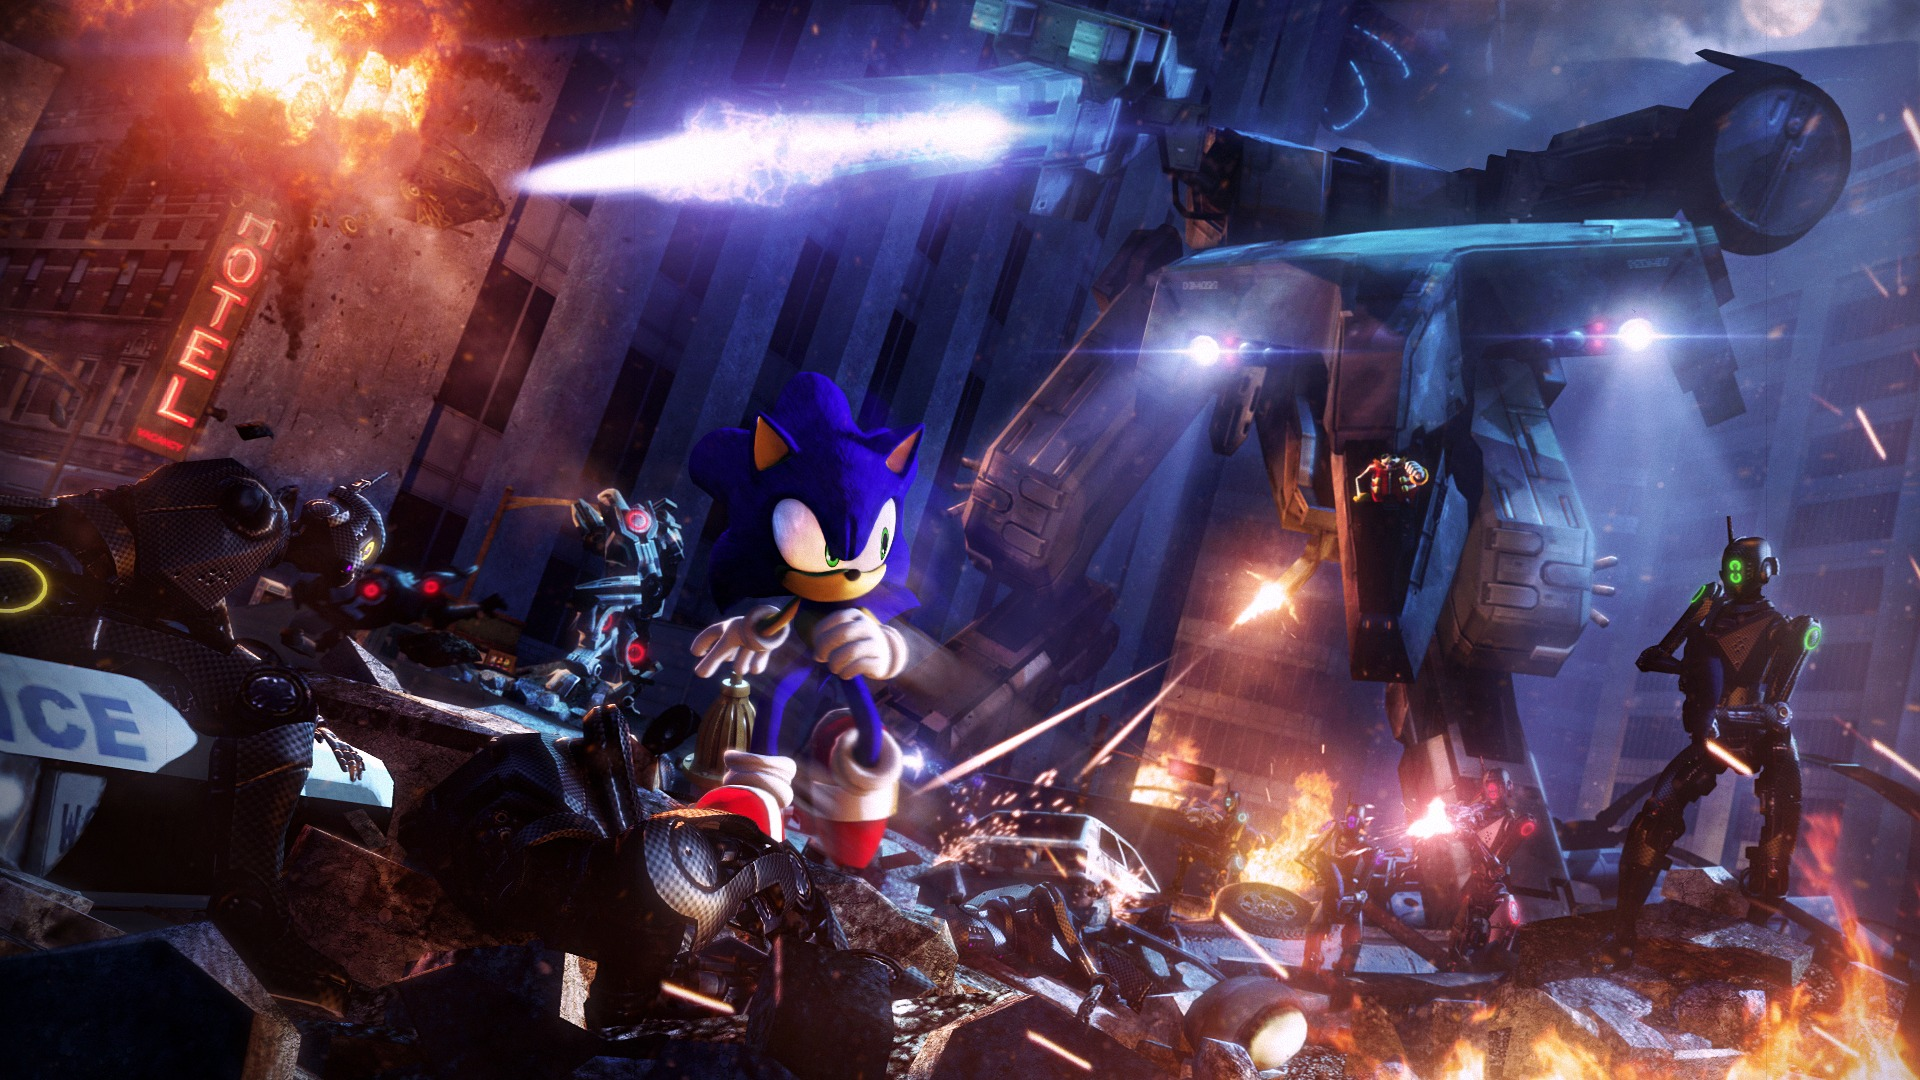 Sonic And Metal Gear Rex Hd Wallpaper Background Image